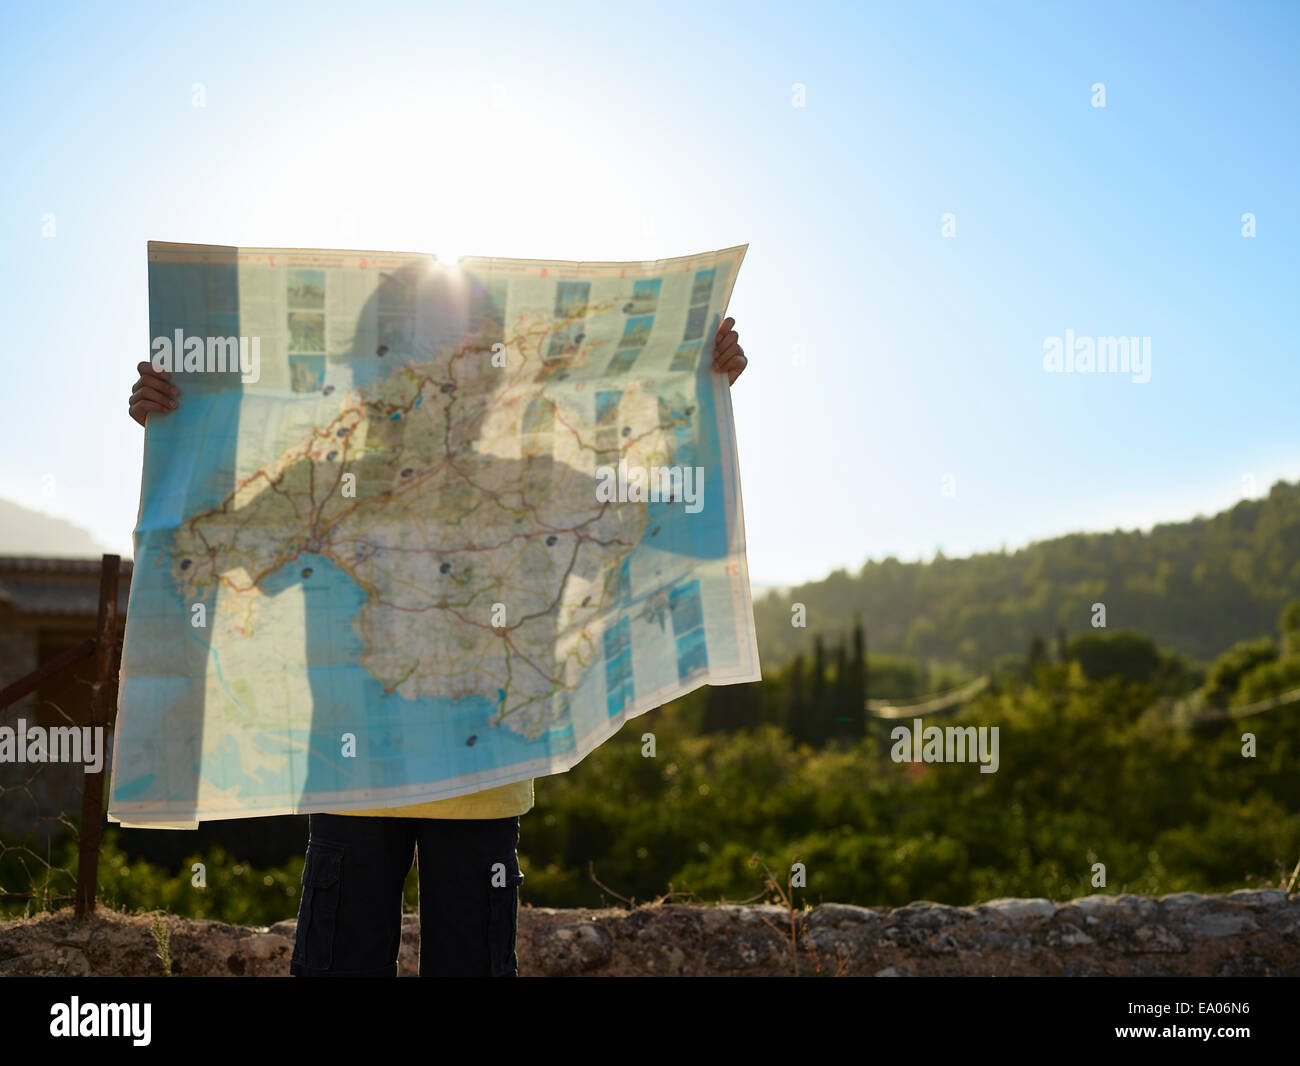 Shadow of boy holding up a map, Majorca, Spain - Stock Image